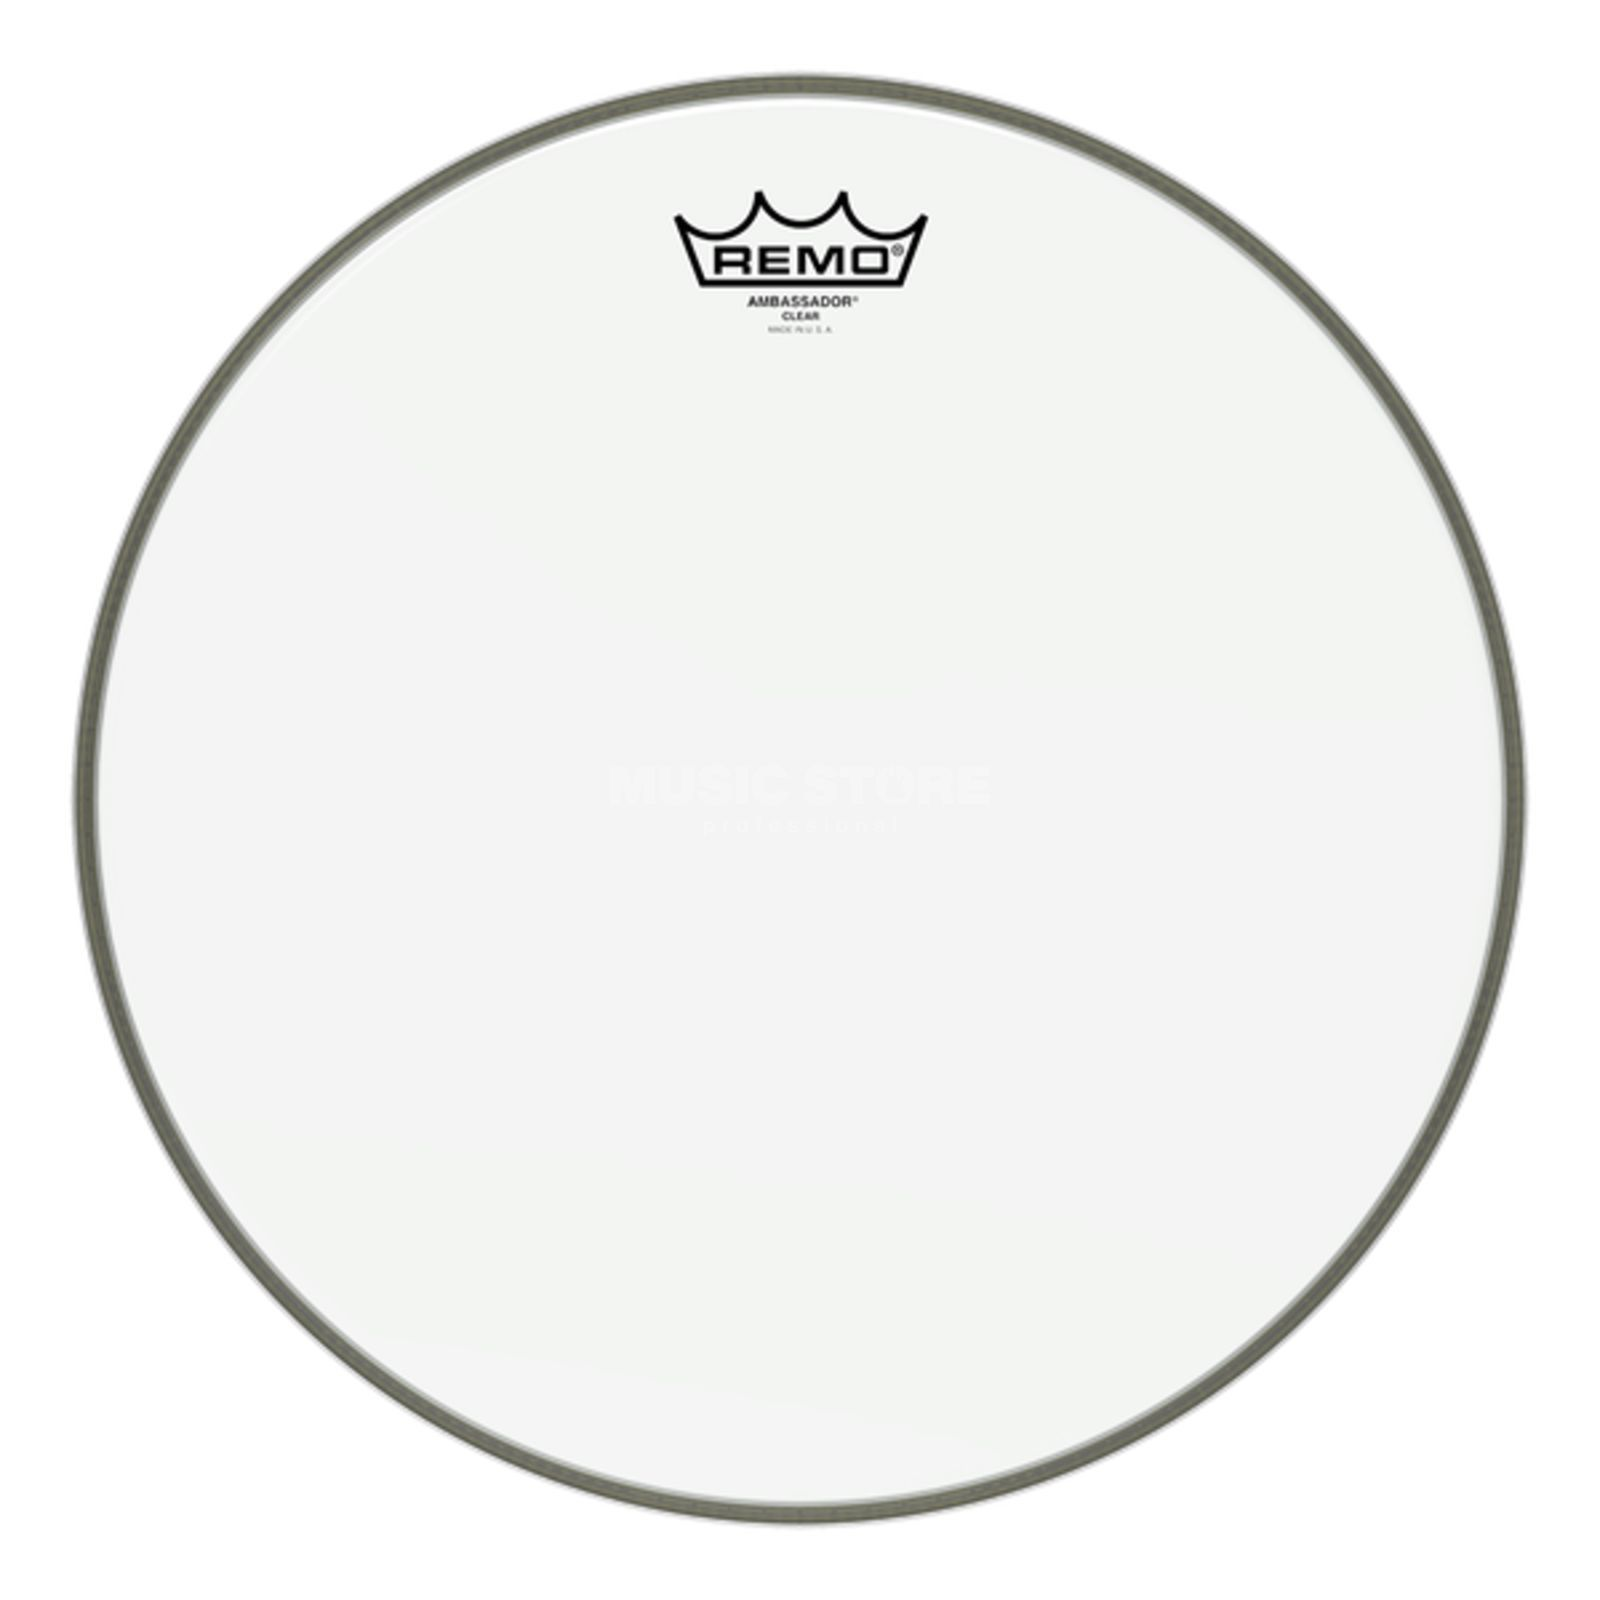 "Remo Ambassador Clear 12"", Tom Batter/Reso Изображение товара"